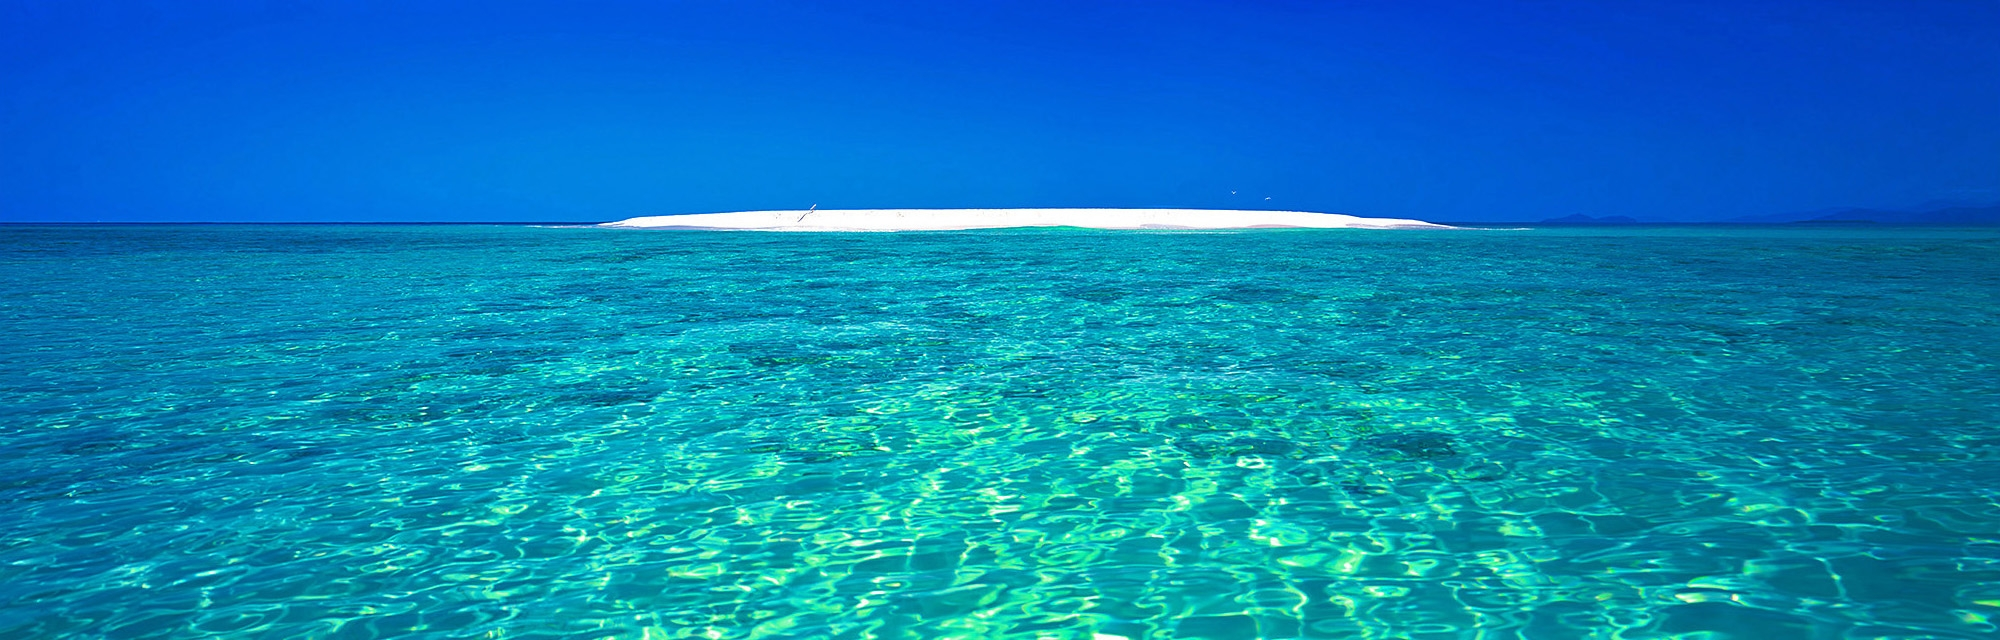 sandy-upolu-vlasoff-cay-great-barrier-reef-cairns-buy-limited-edition-photography-ric-steininger-vlasoff-cay